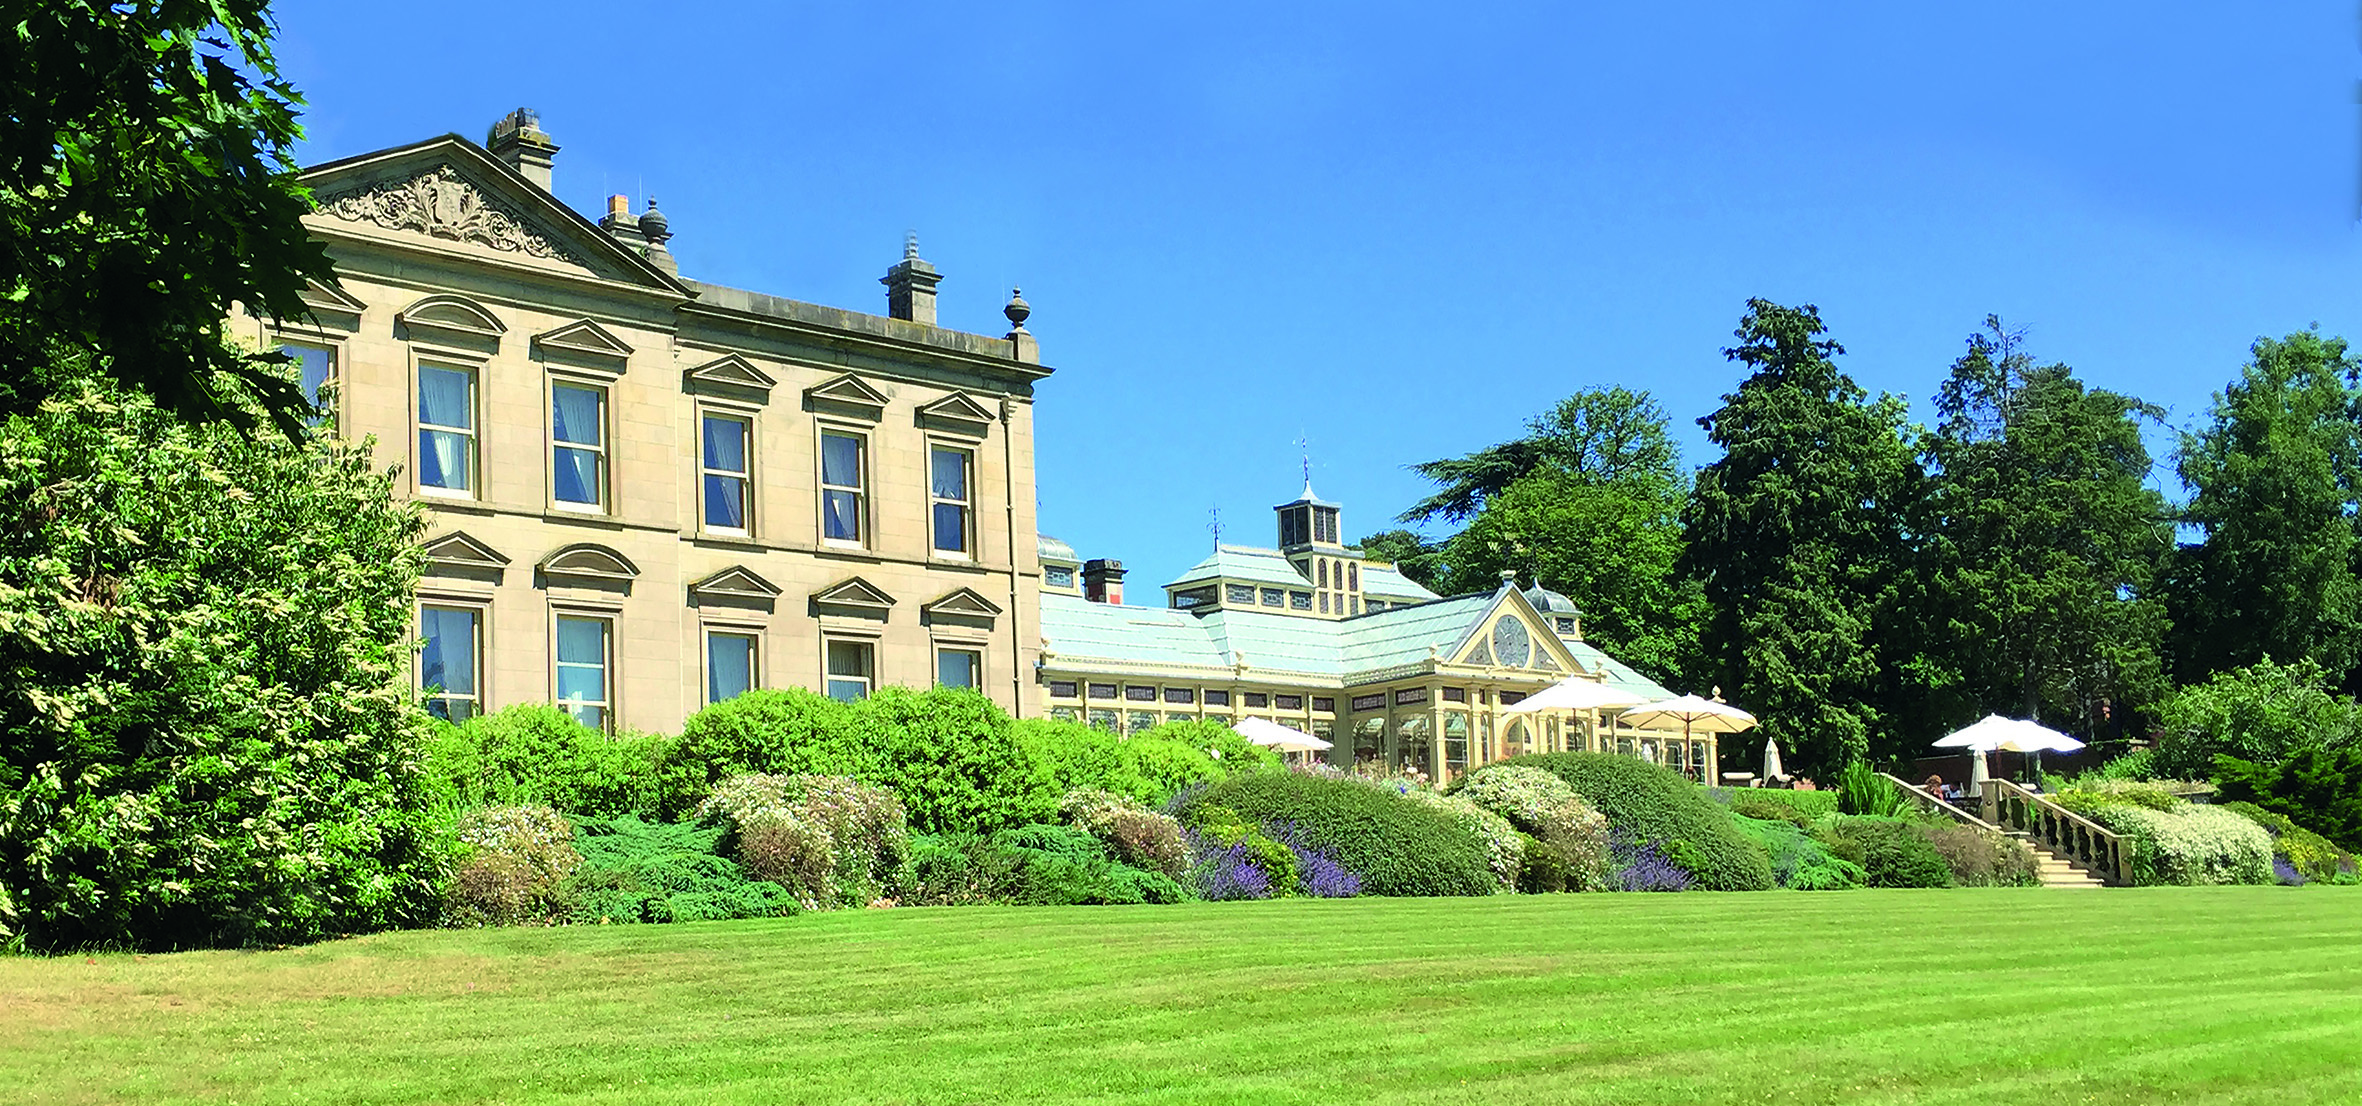 The outside of Kilworth House facing out on to the gardens